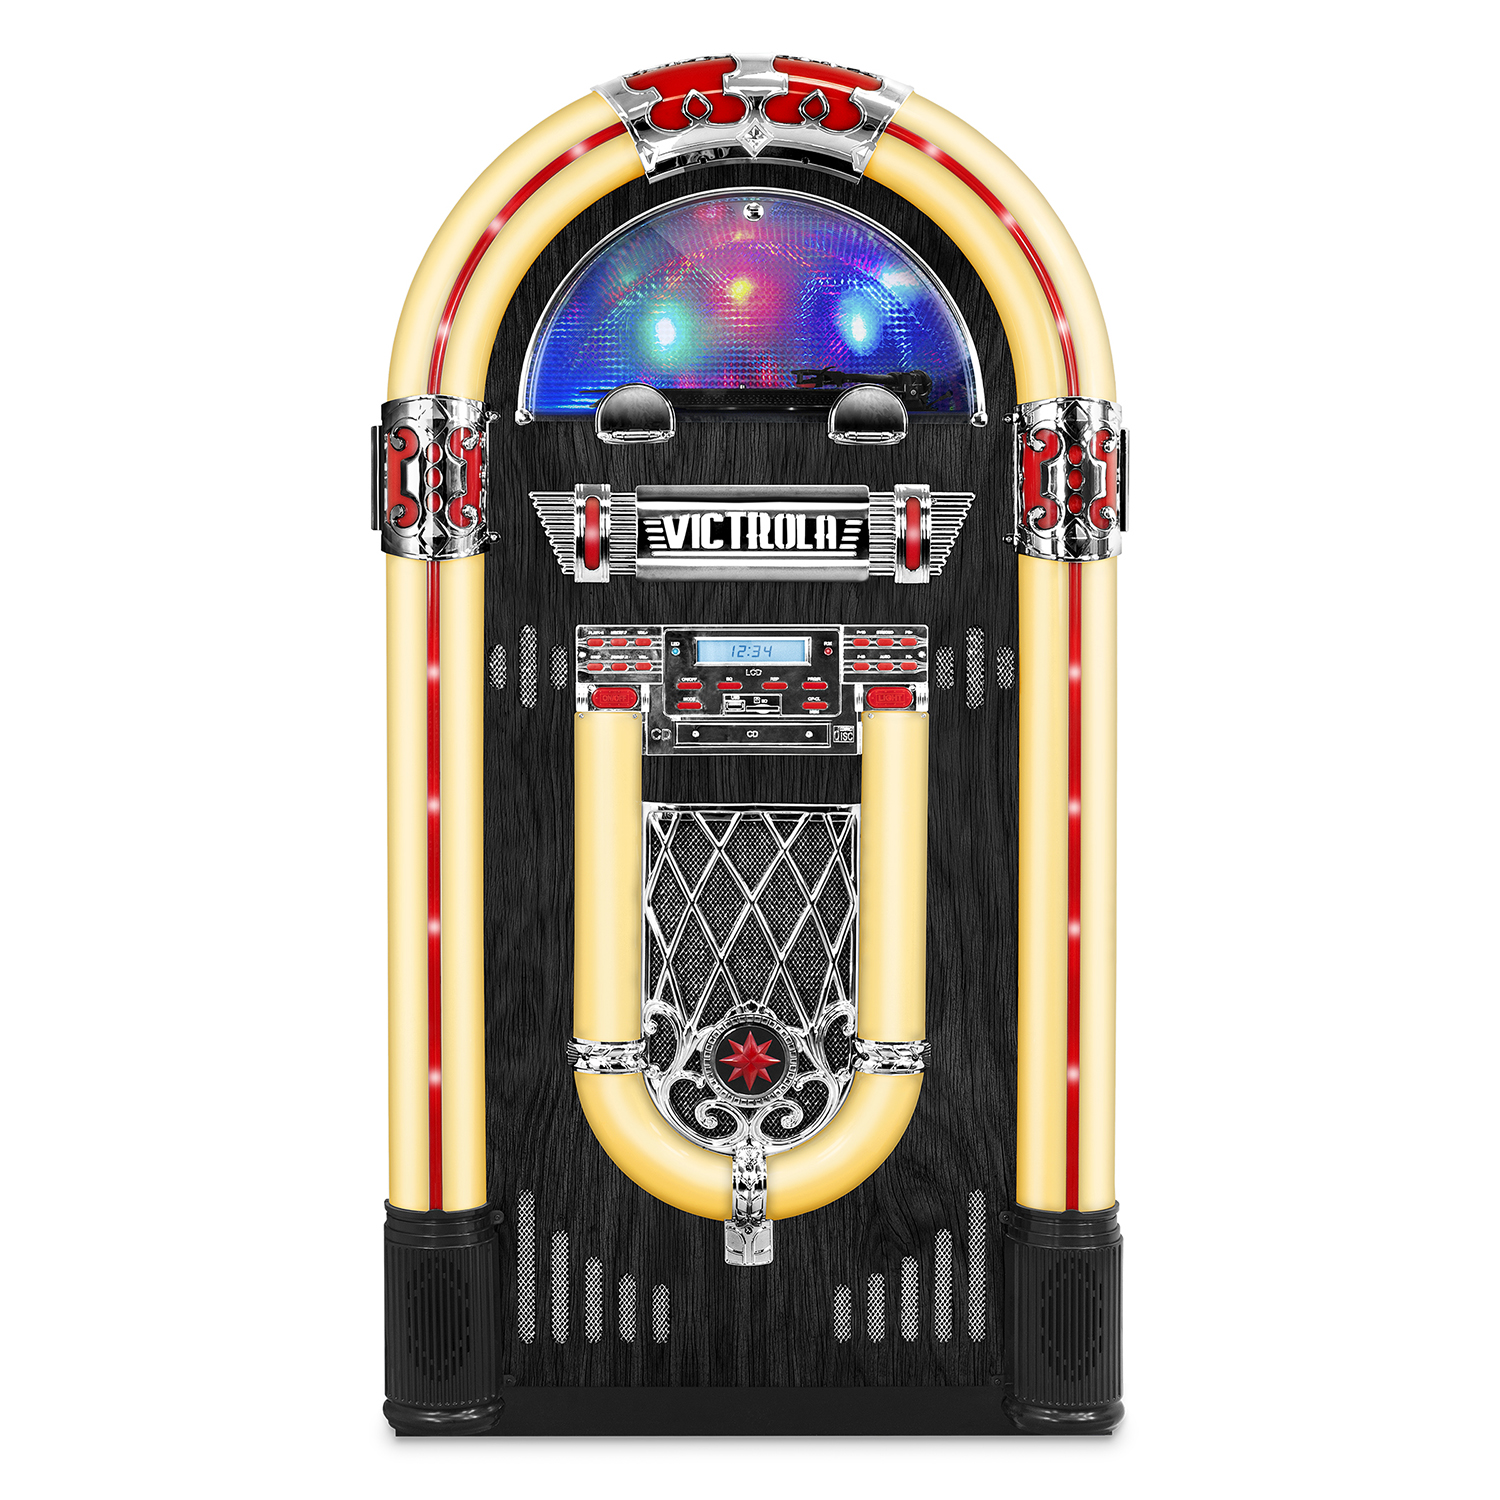 "Victrola Nostalgic Wood 51"" Full-size Bluetooth Jukebox with Record Player and 3-Speed Turntable by Victrola"